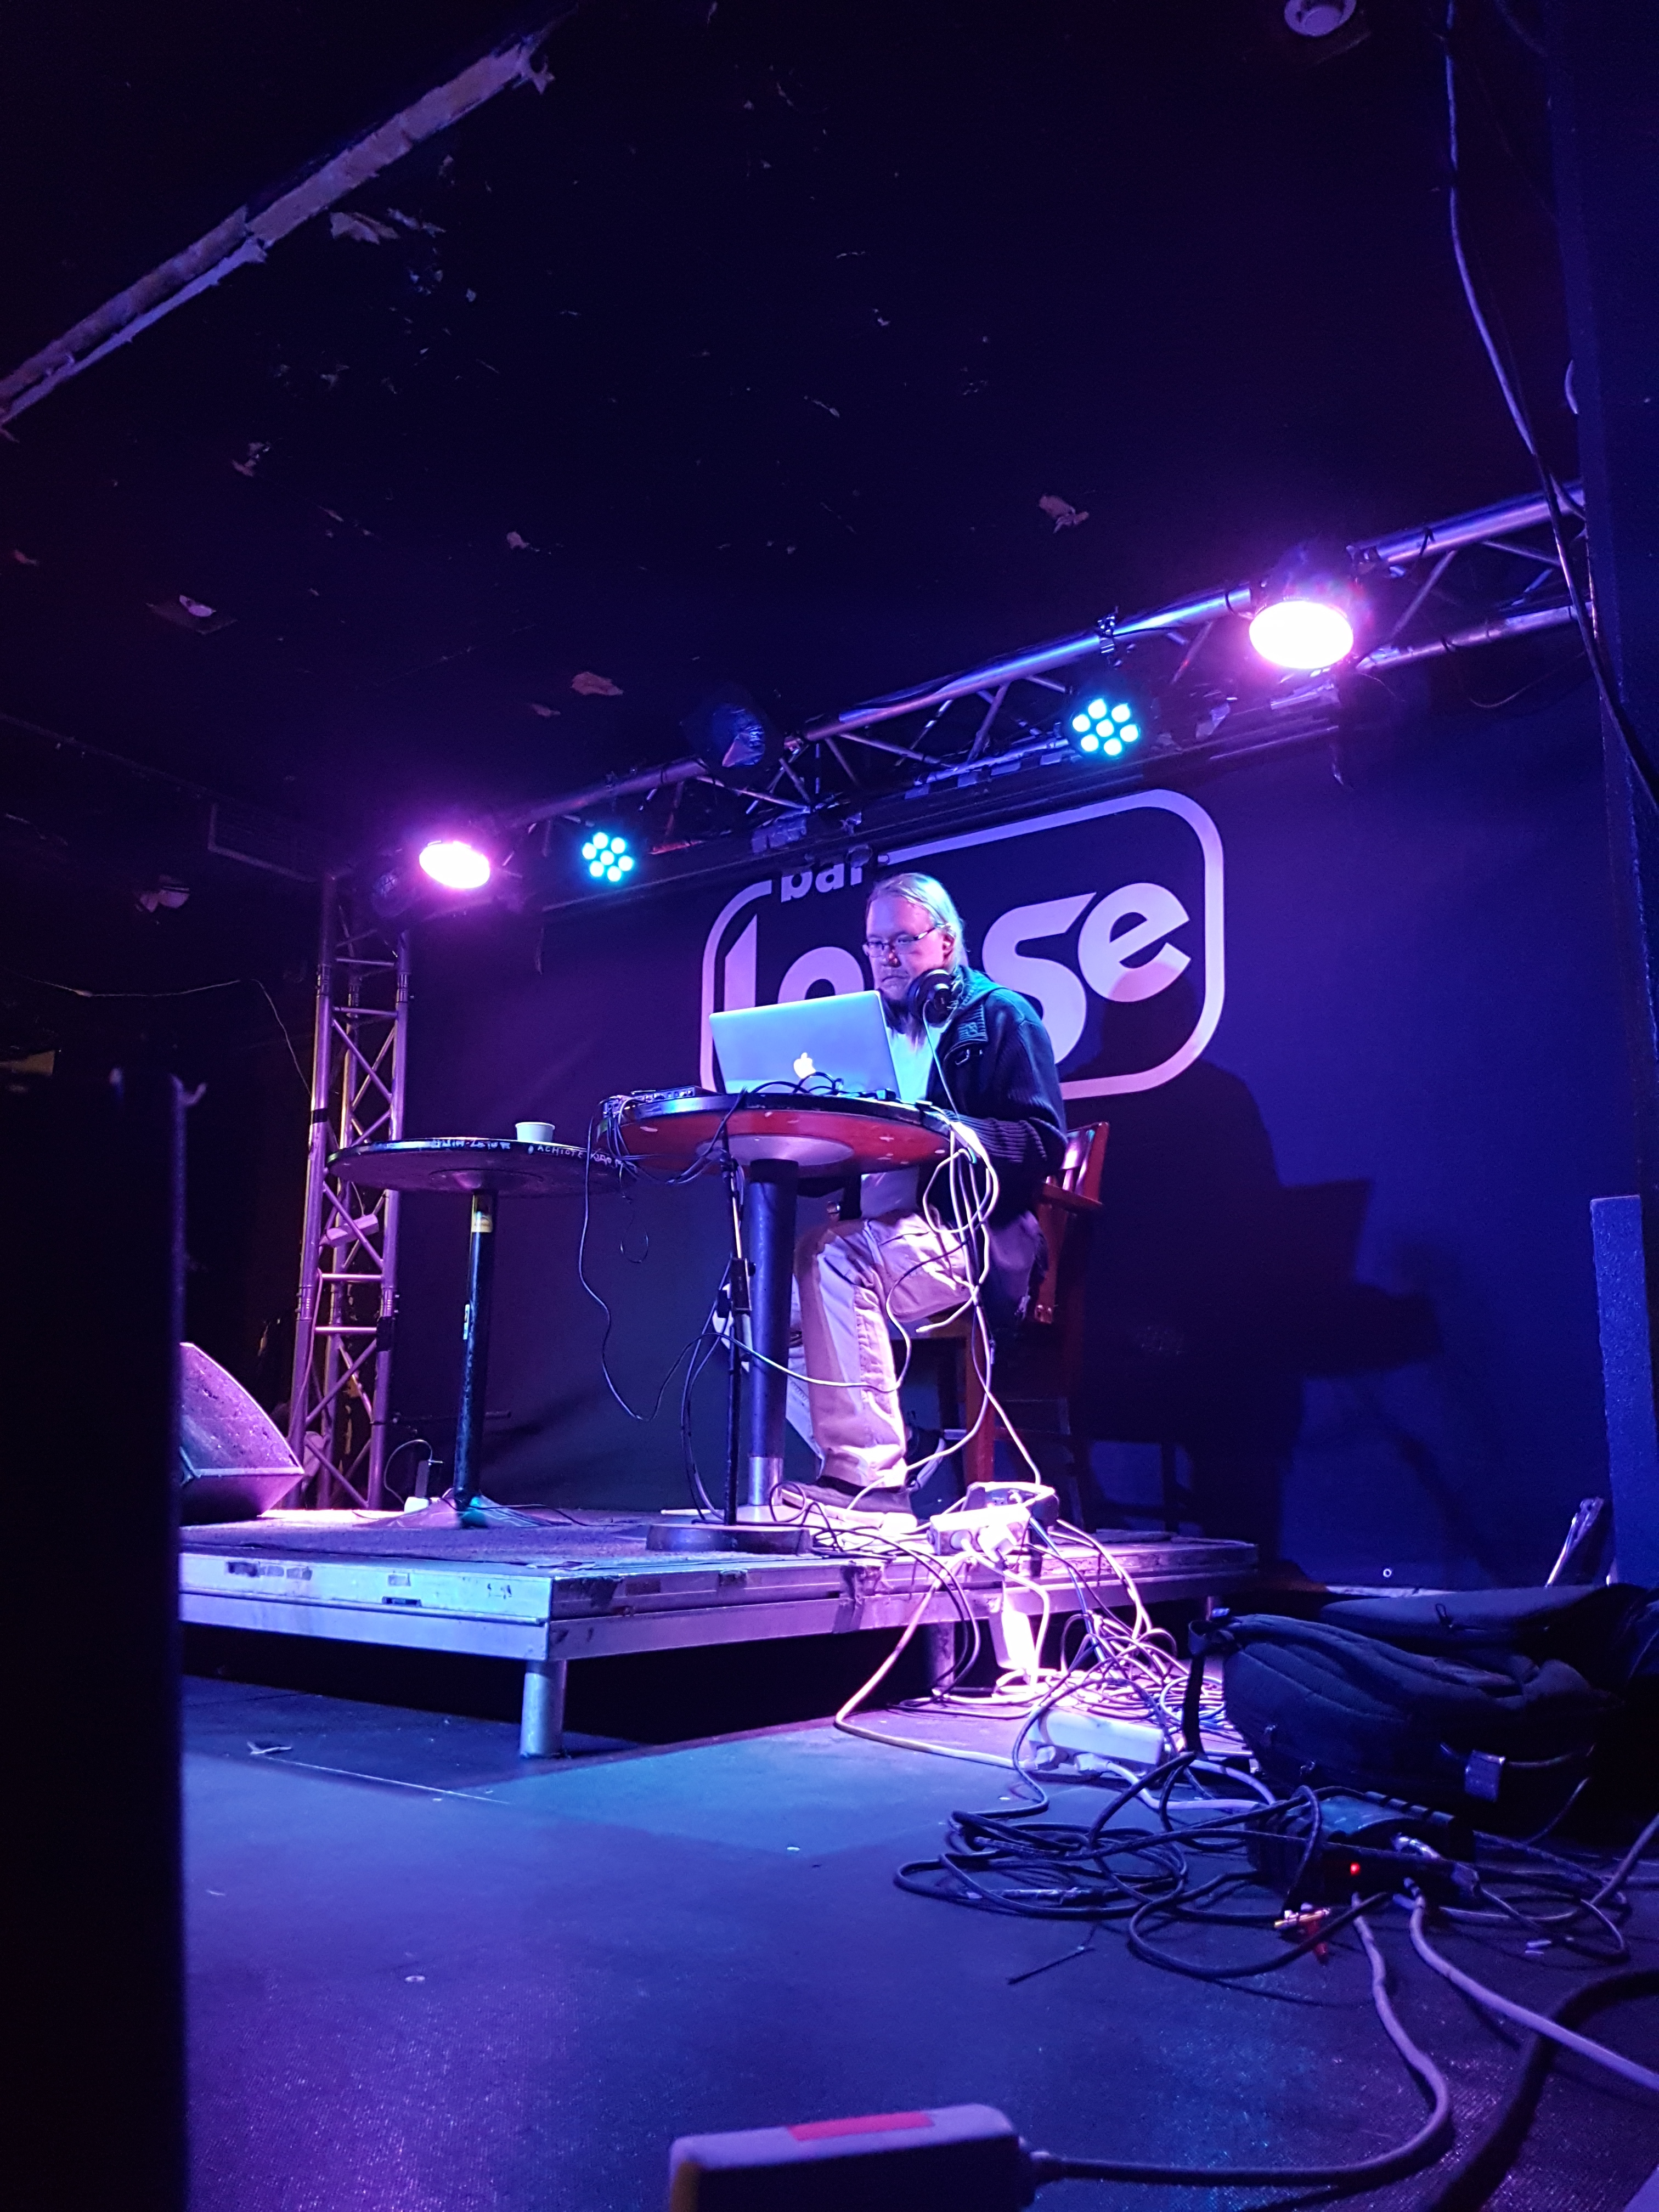 Esa Ruoho Live at Popcult Nights 2018, 1